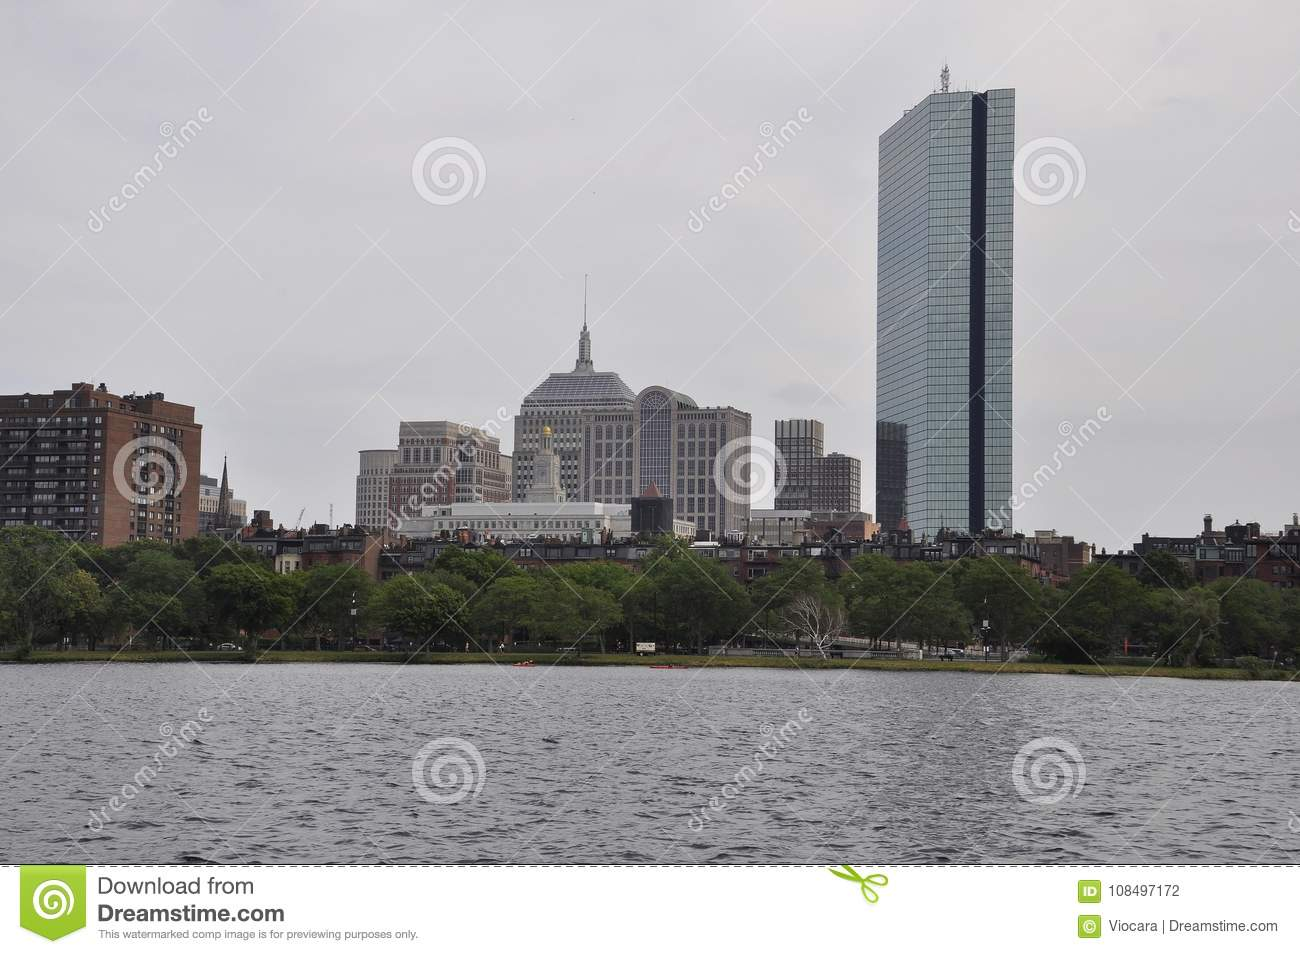 Boston Skyline from Charles River in Massachusettes State of USA